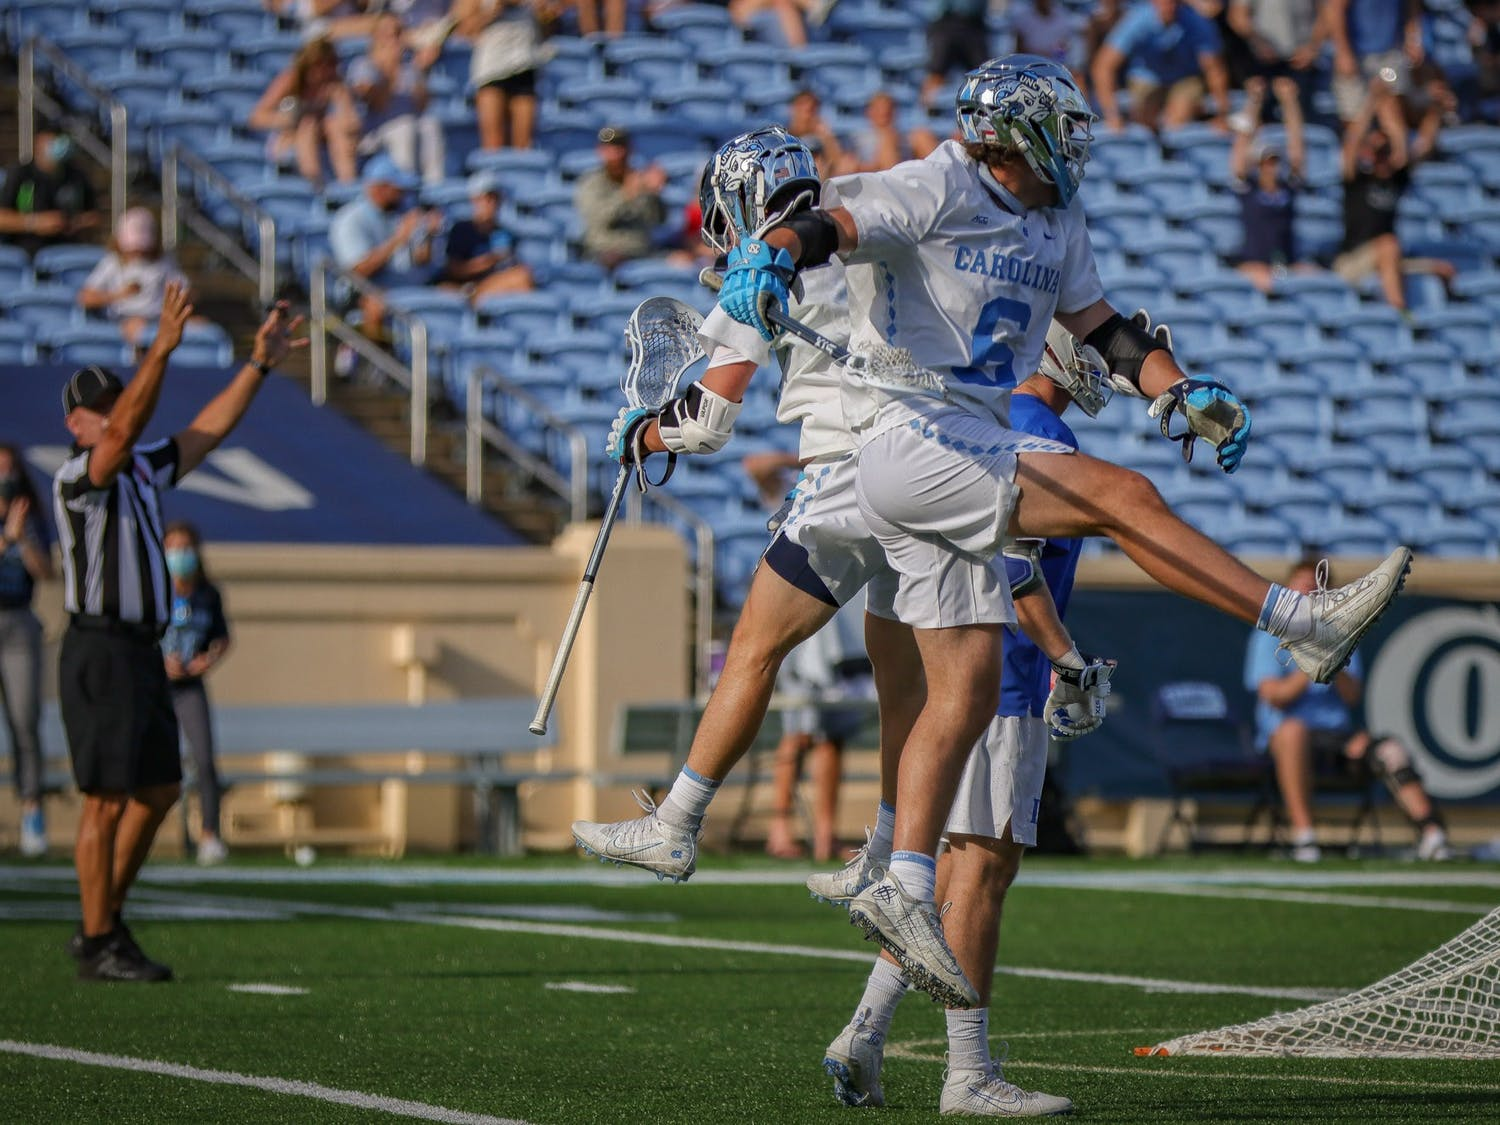 UNC sophomore attackman Lance Tillman (0) and freshman midfielder Cole Herbert (6) celebrate Herbert's fourth quarter goal during the Tar Heels' 15-12 victory against Duke on Sunday, May 2. With the victory, UNC and Duke share the 2021 ACC regular season title.